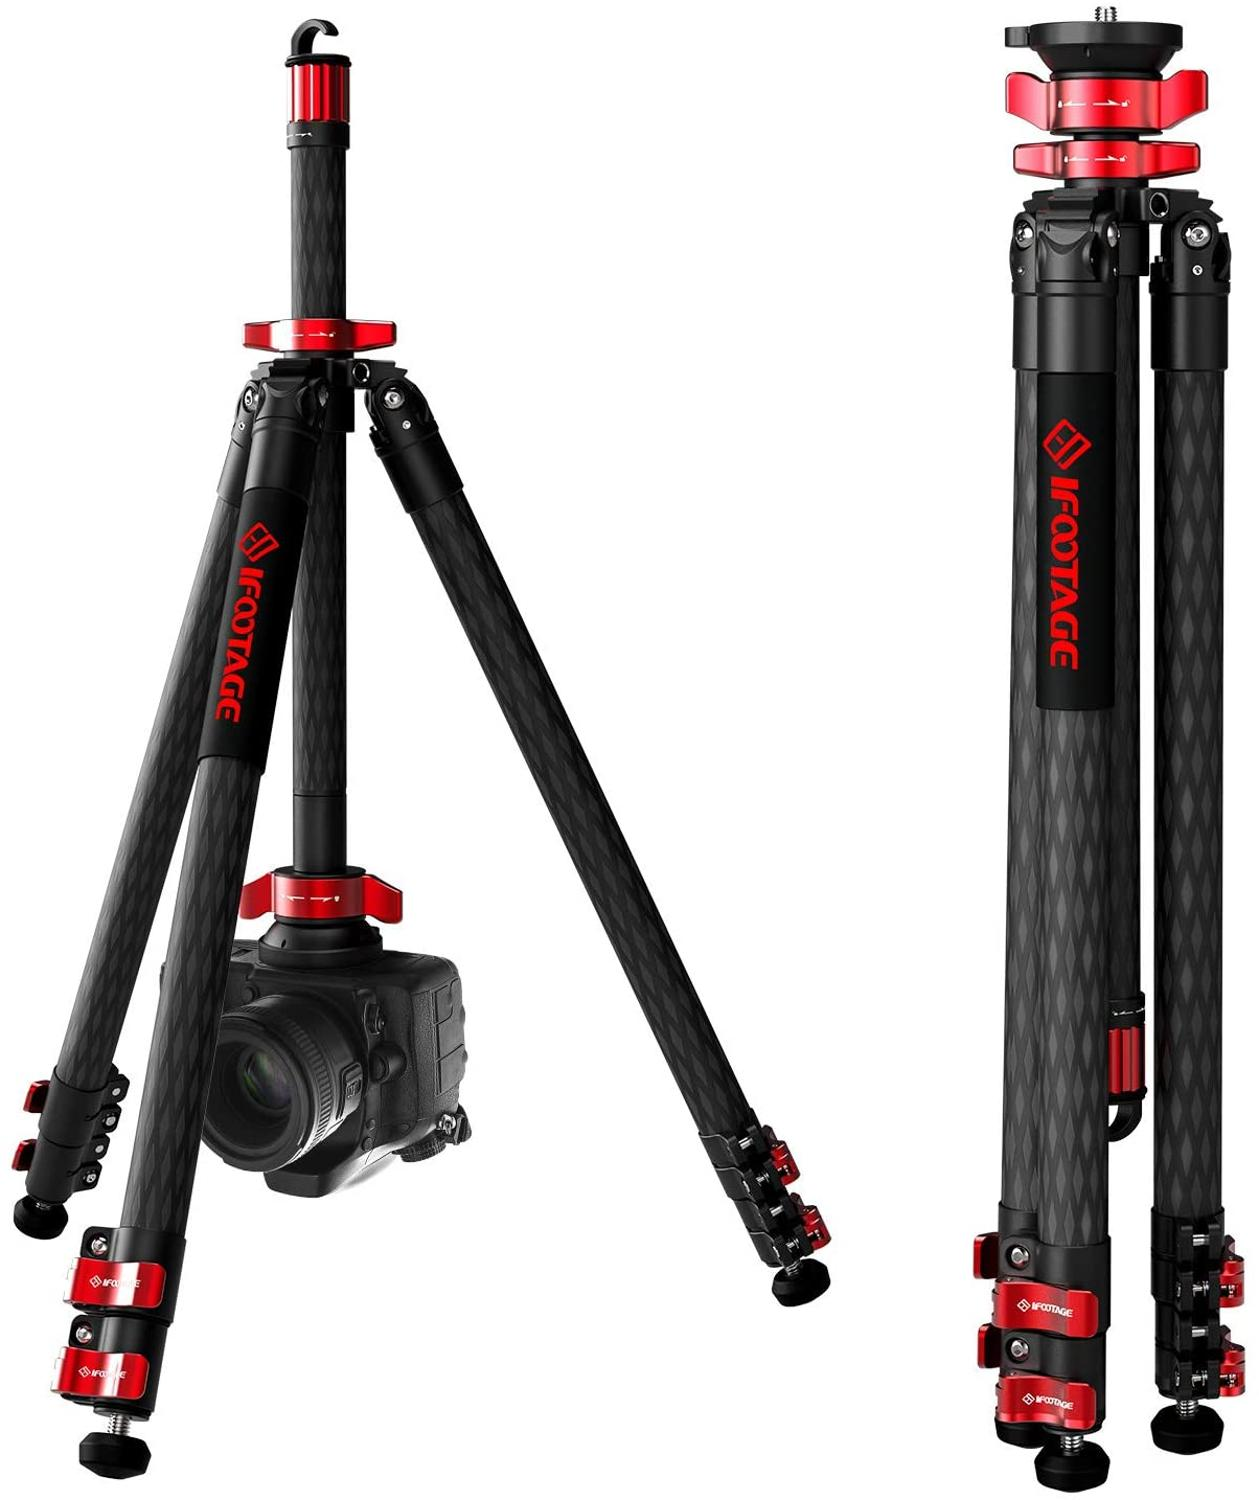 IFOOTAGE Gazelle series TA5&TC5&TA6&TC6 travel Professional Tripod carbon fiber camera tripods 3 sections for SONY CANON DSLR